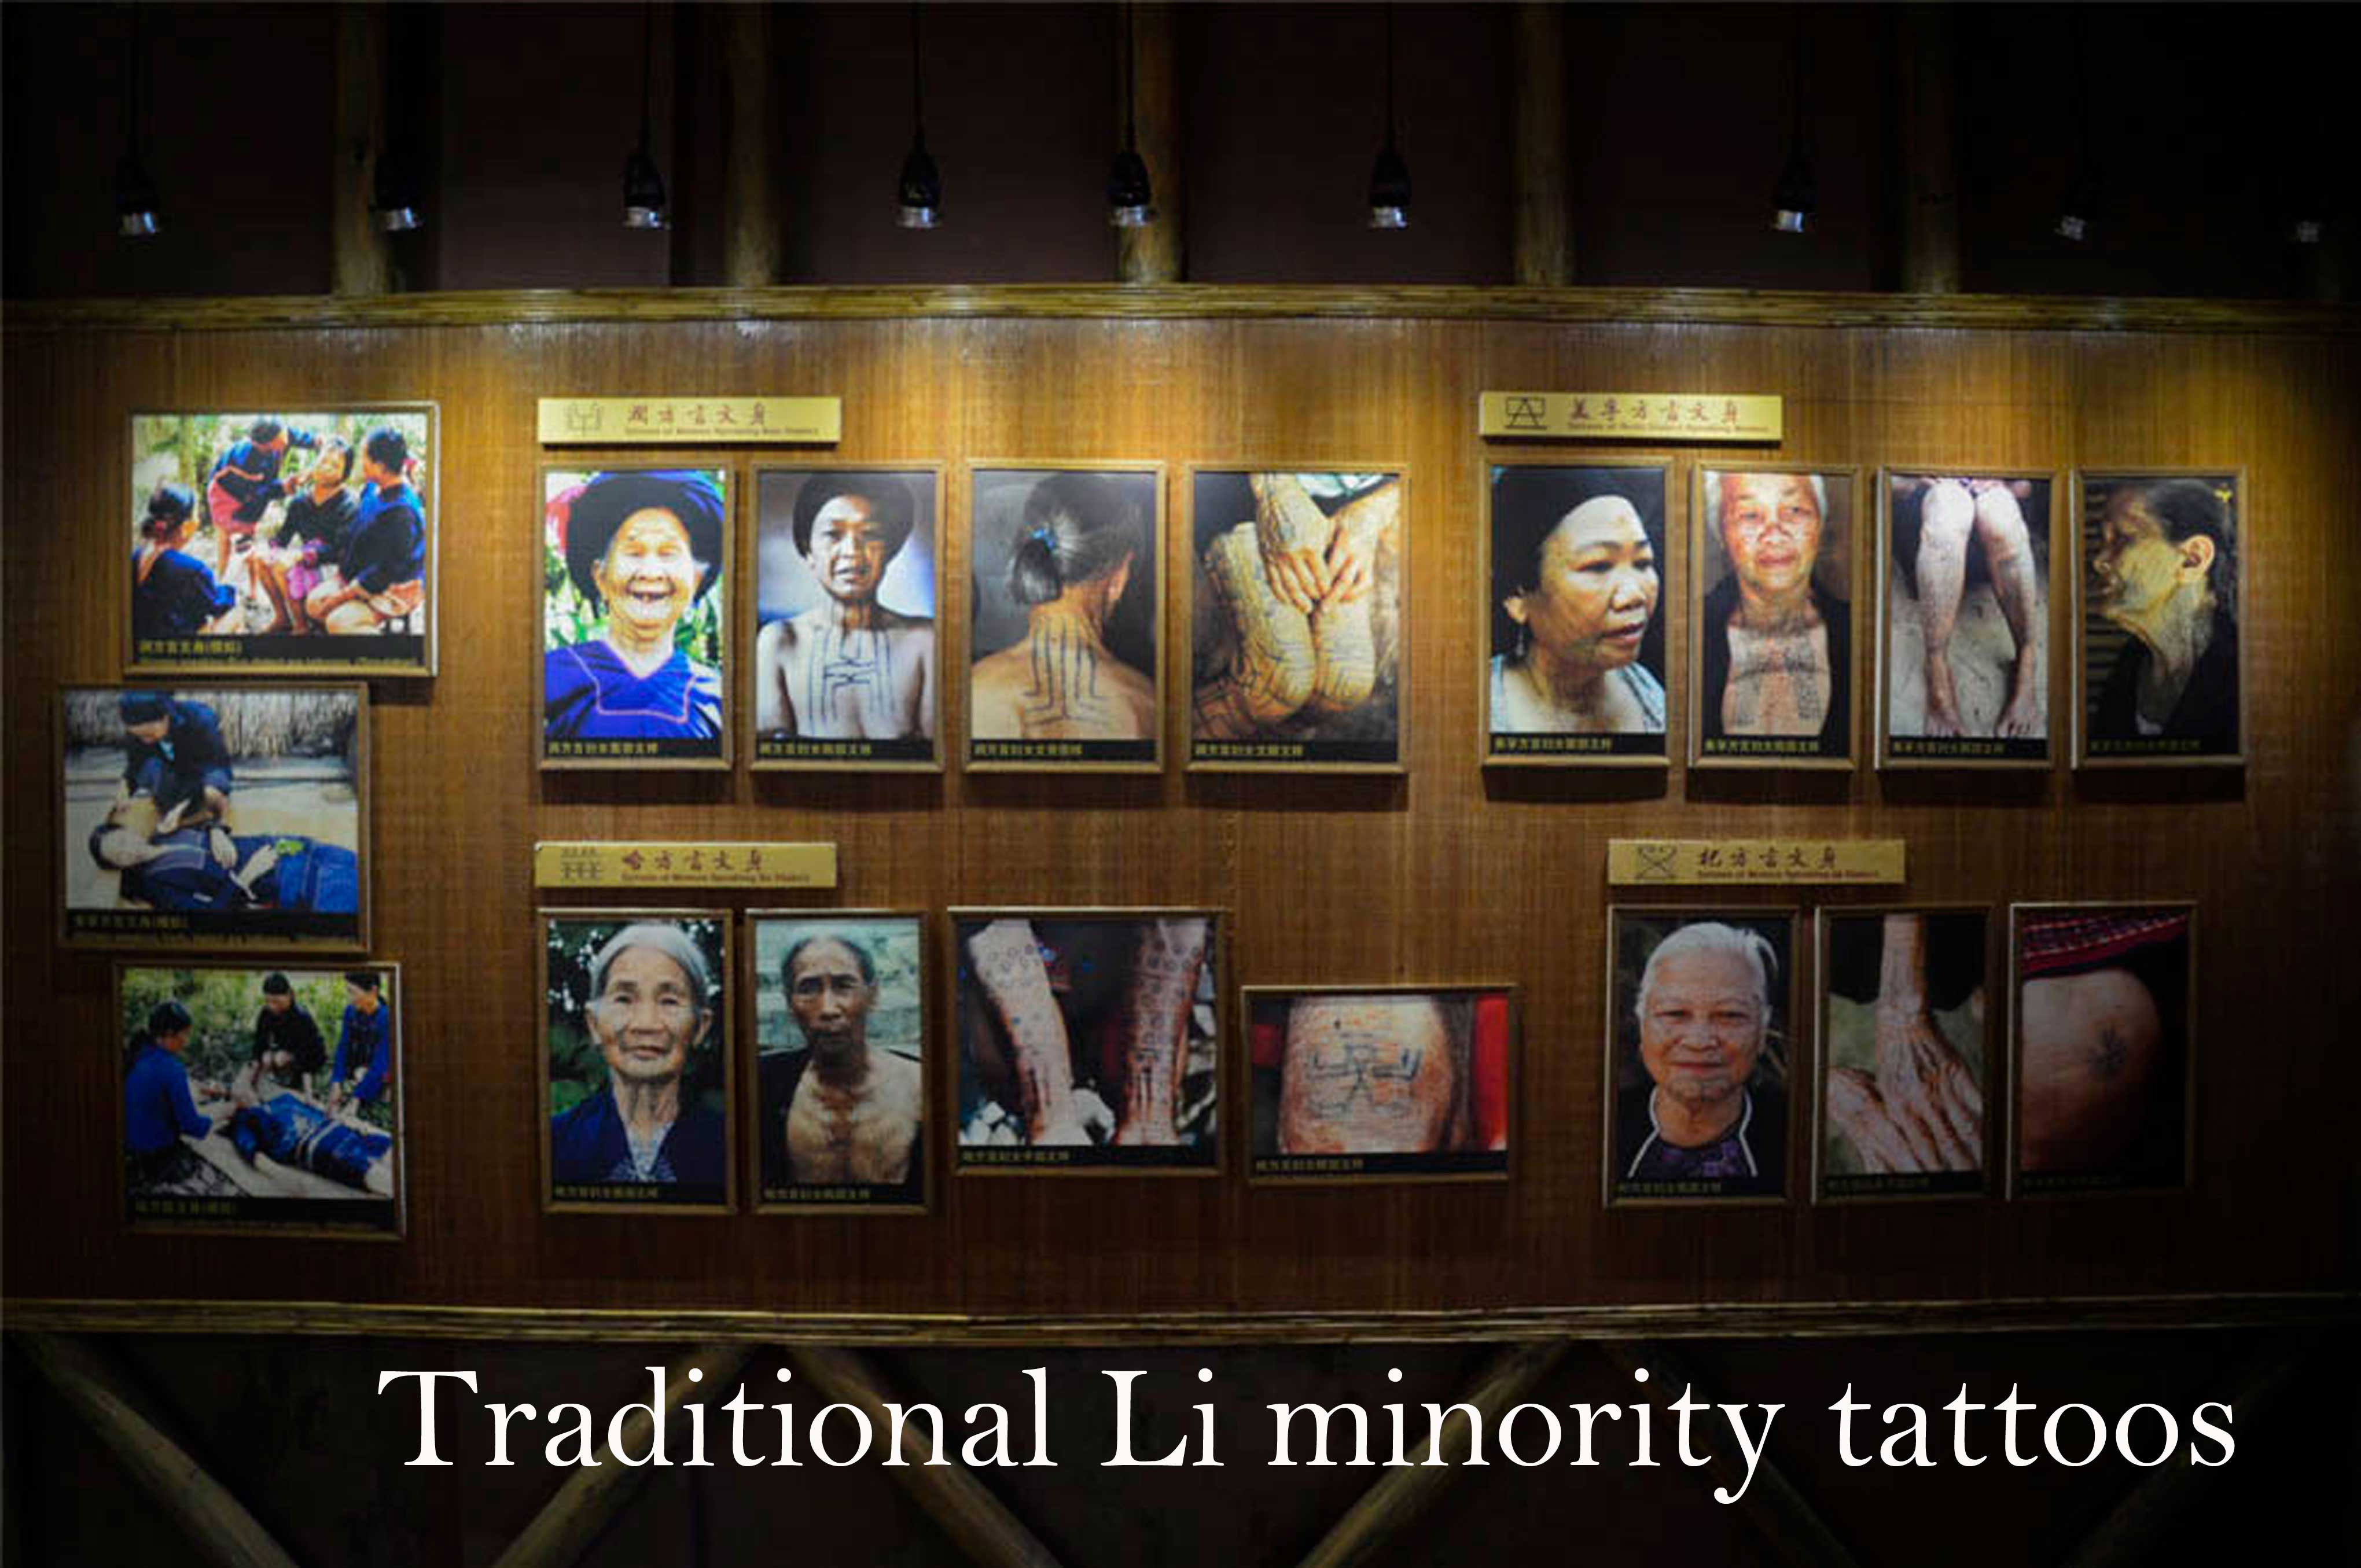 Li minority tattoos